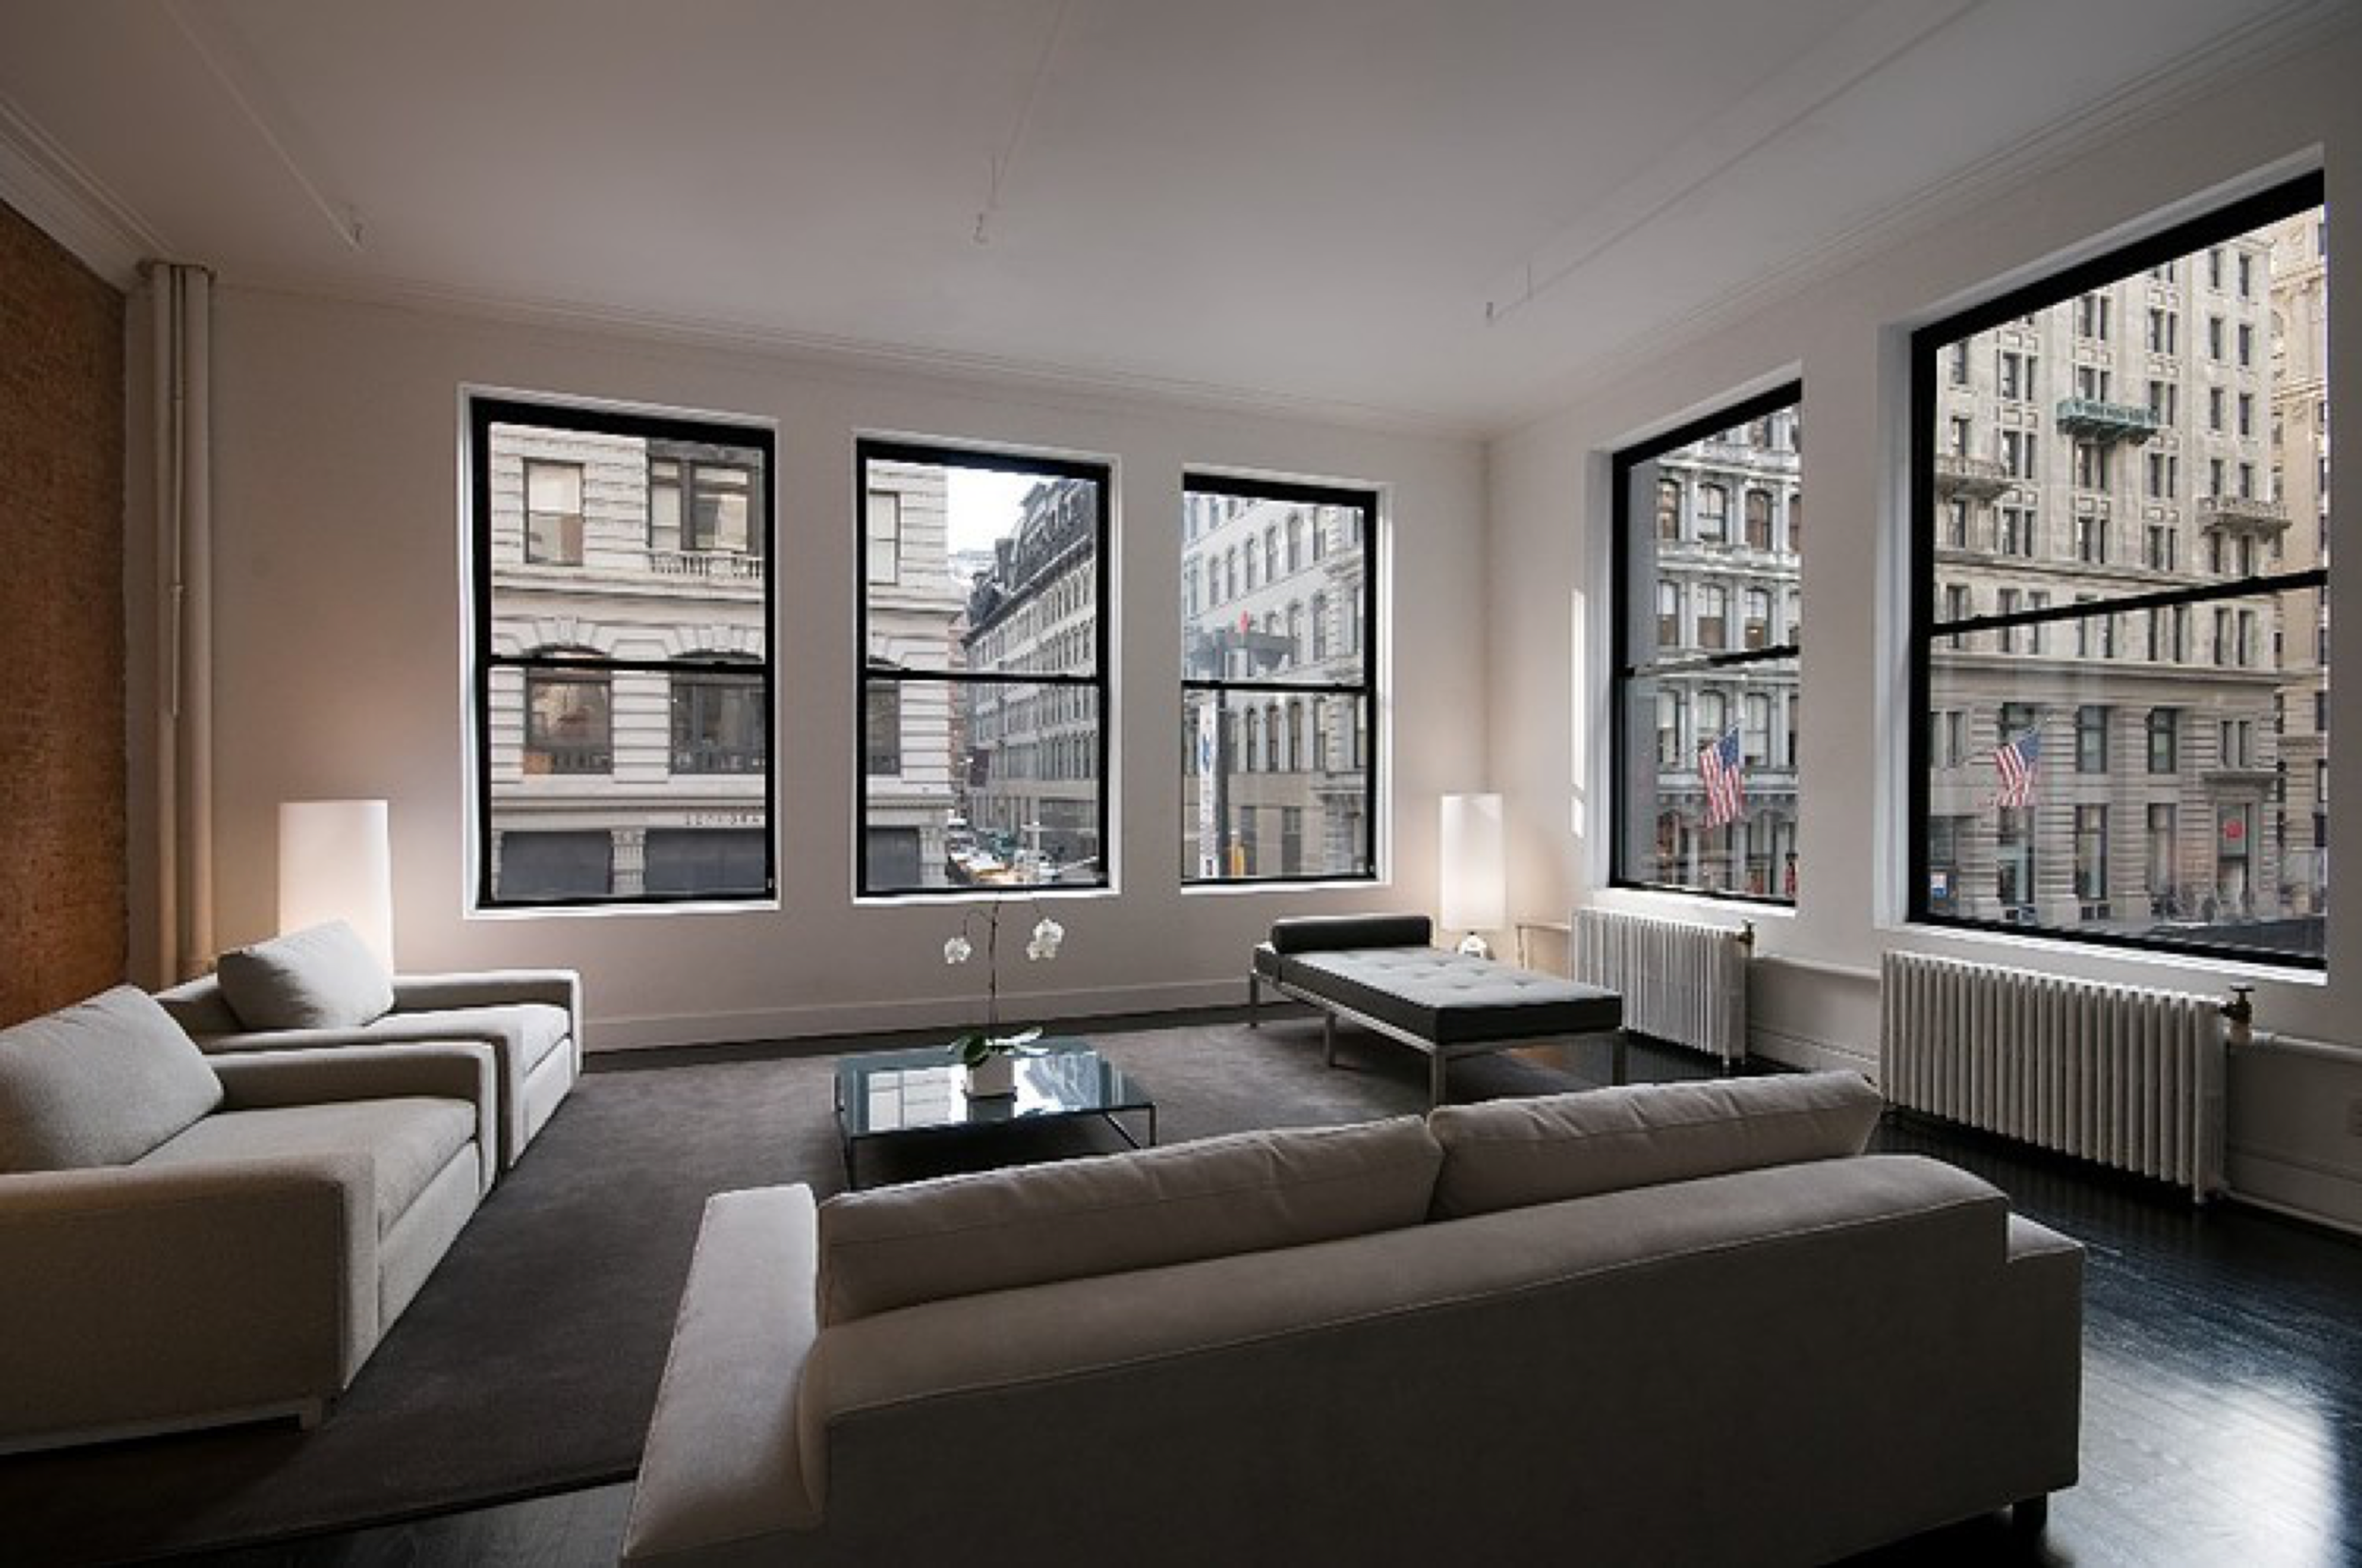 Merveilleux How Much Does It Cost To Combine Two Apartments Into A 4 Bedroom Condo In  Tribeca